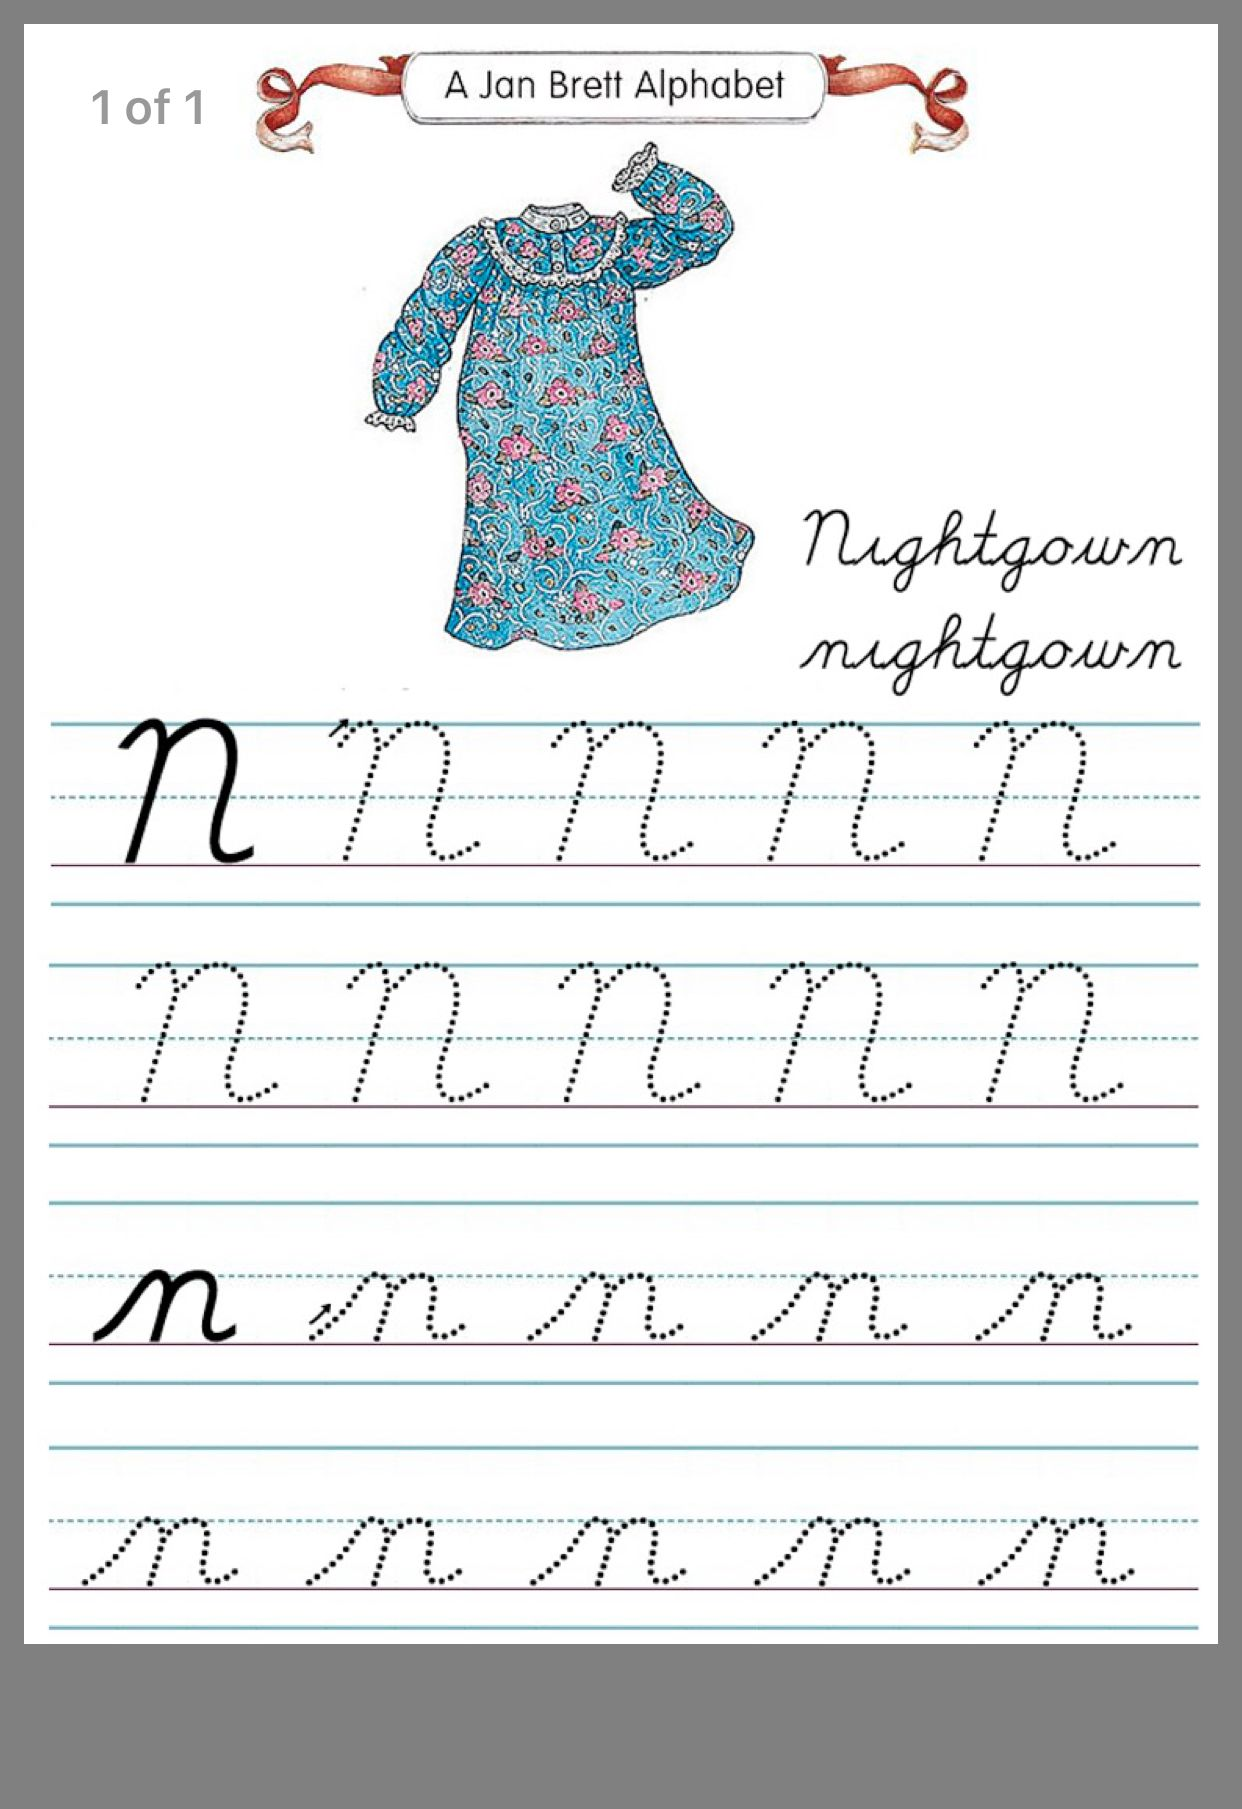 Cursive Handwriting Worksheets Image By Nakako Furukawa On